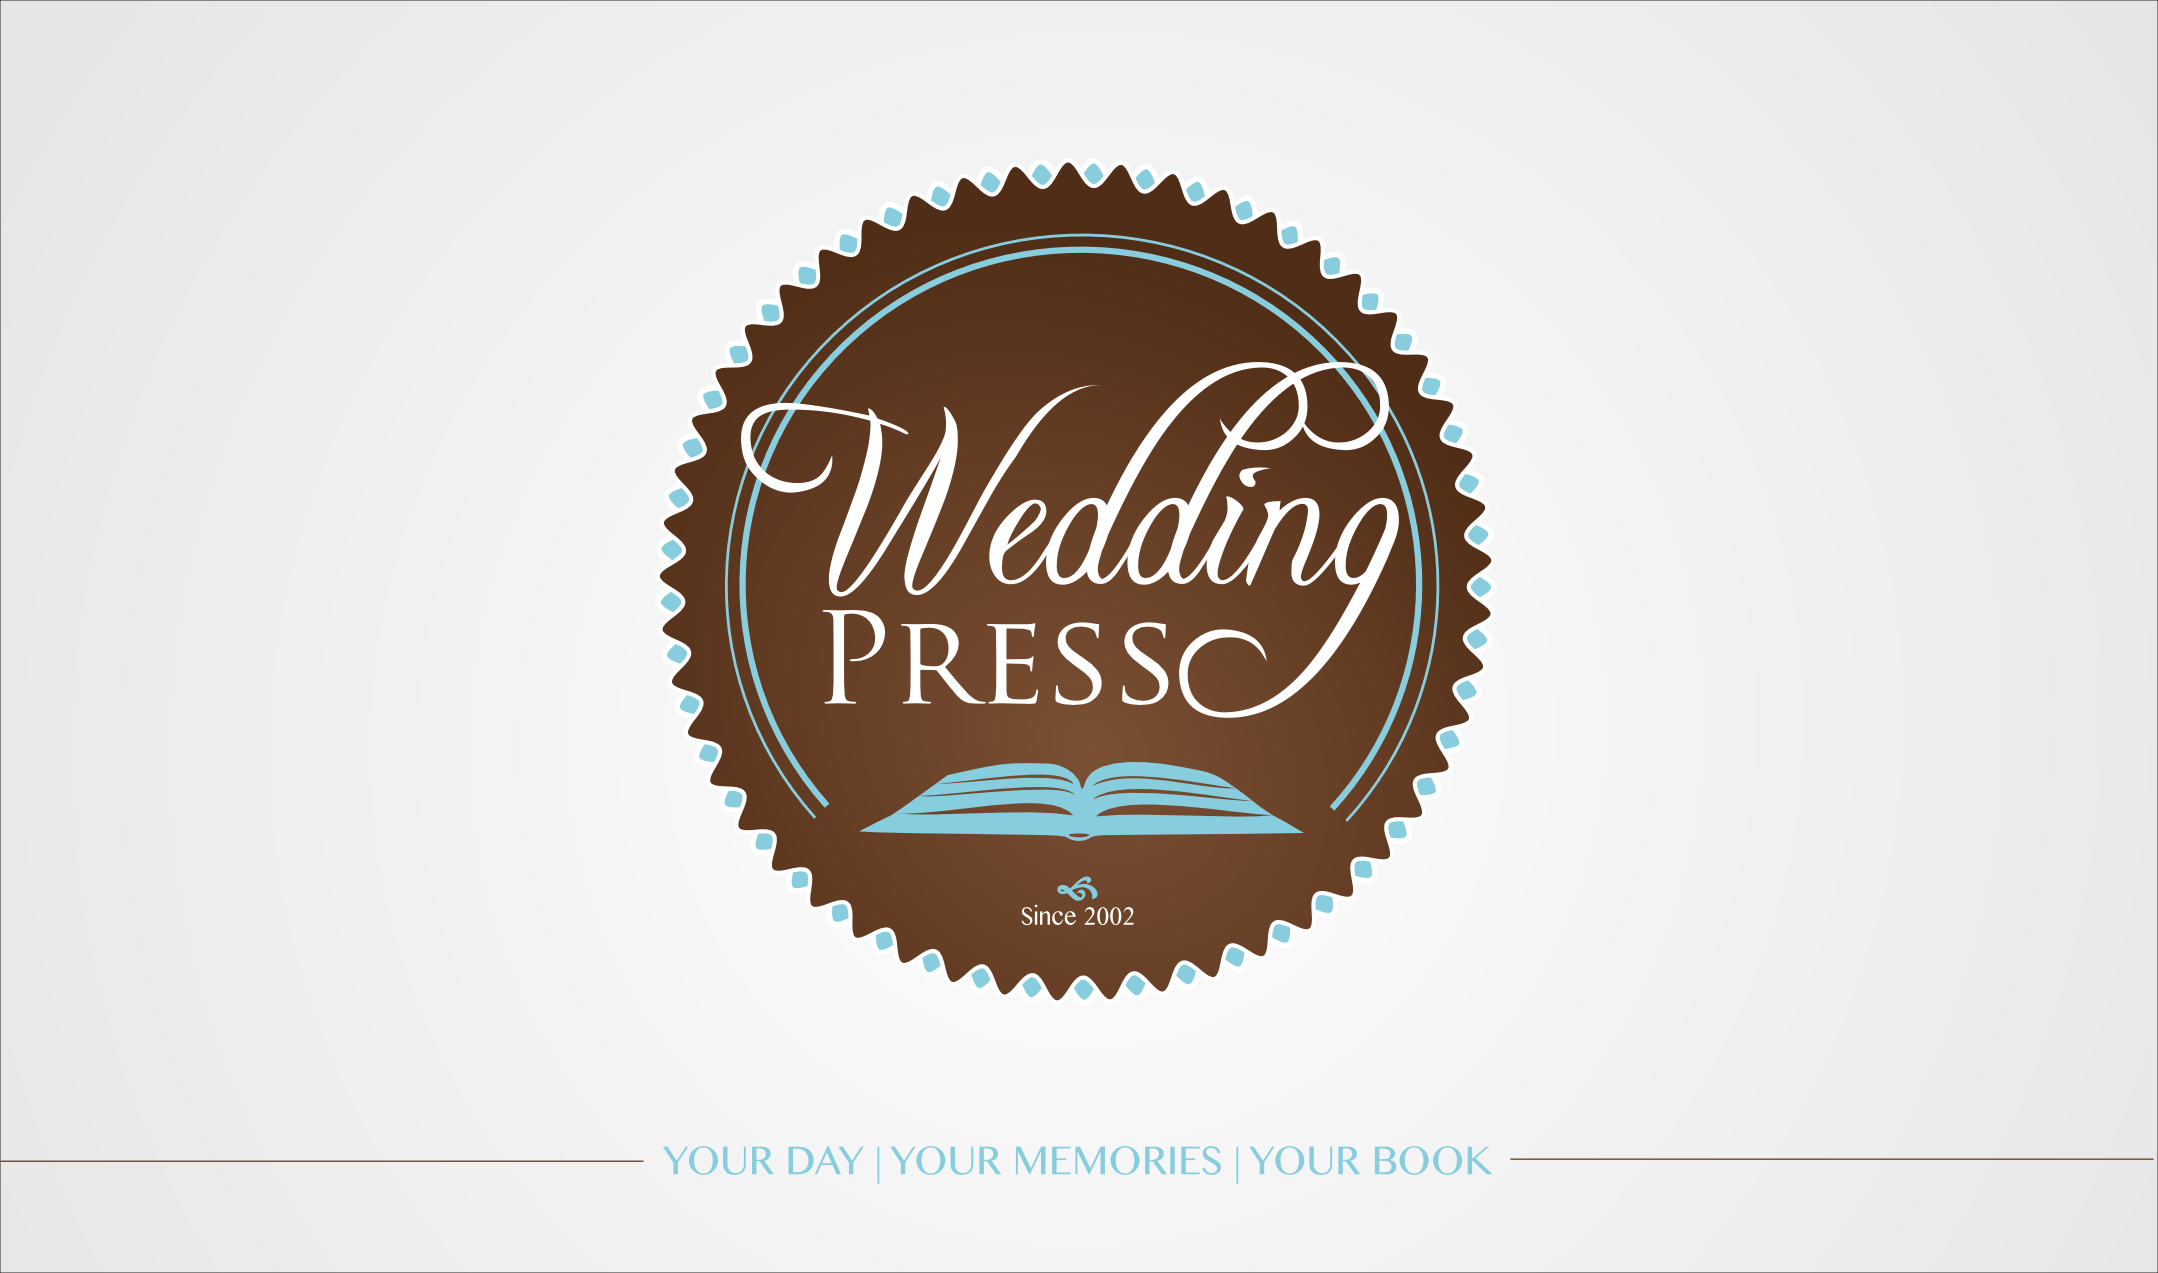 Logo Design by Andrew Bertram - Entry No. 82 in the Logo Design Contest Wedding Writes Logo Design.